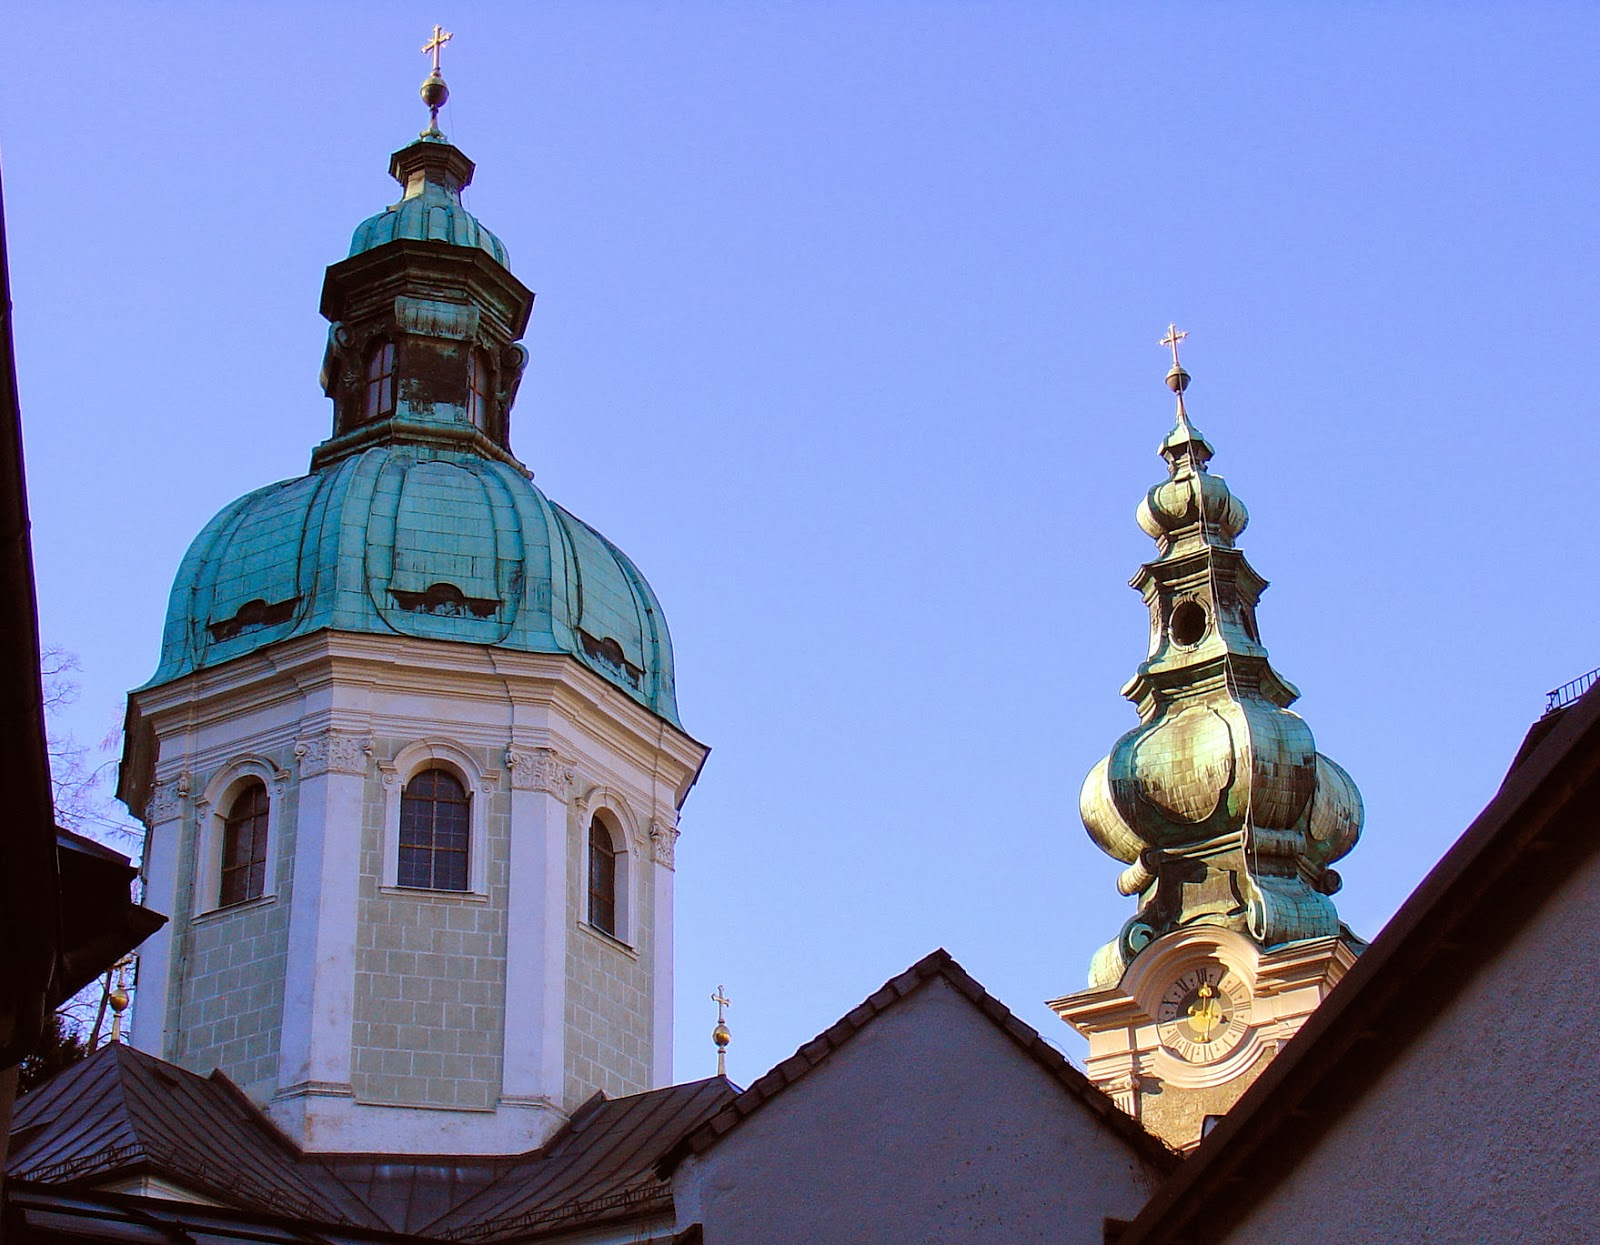 The Baroque cupola of Saint Peter's Abbey in Salzburg, Austria.